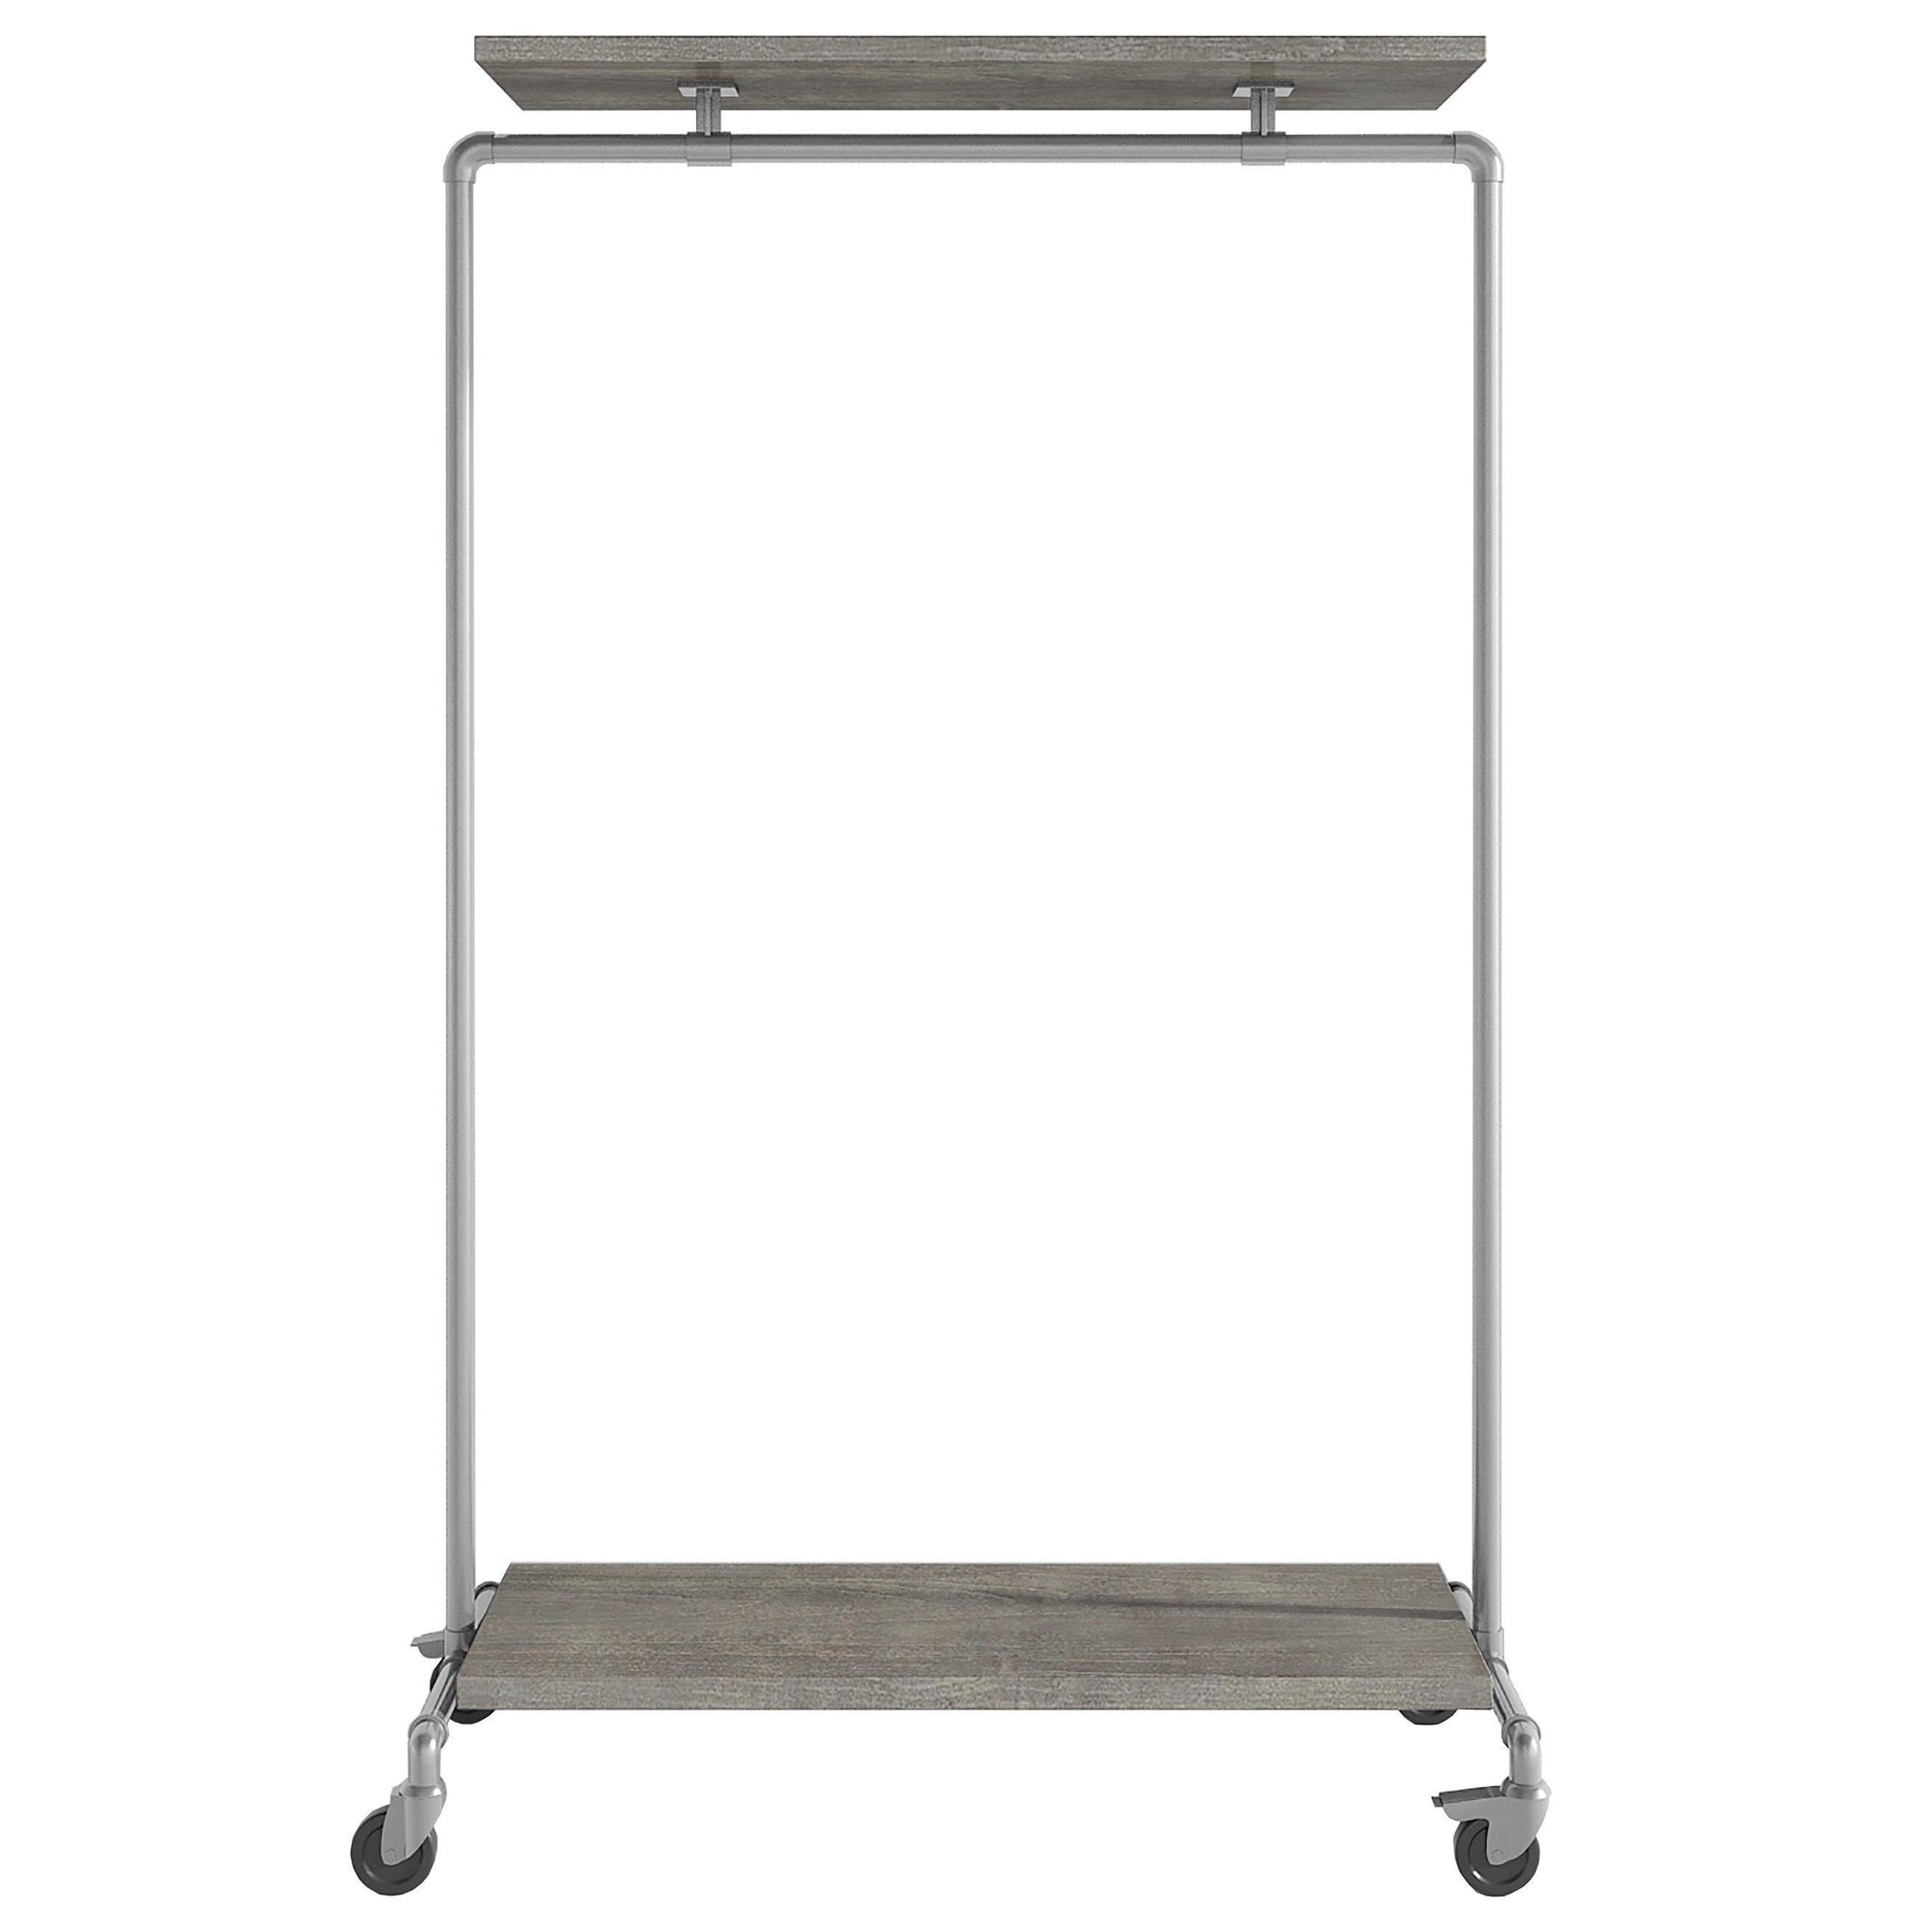 Ziito Clothes Rail B1 / 100 cm / Med Wood Double Shelf Tøjstativ